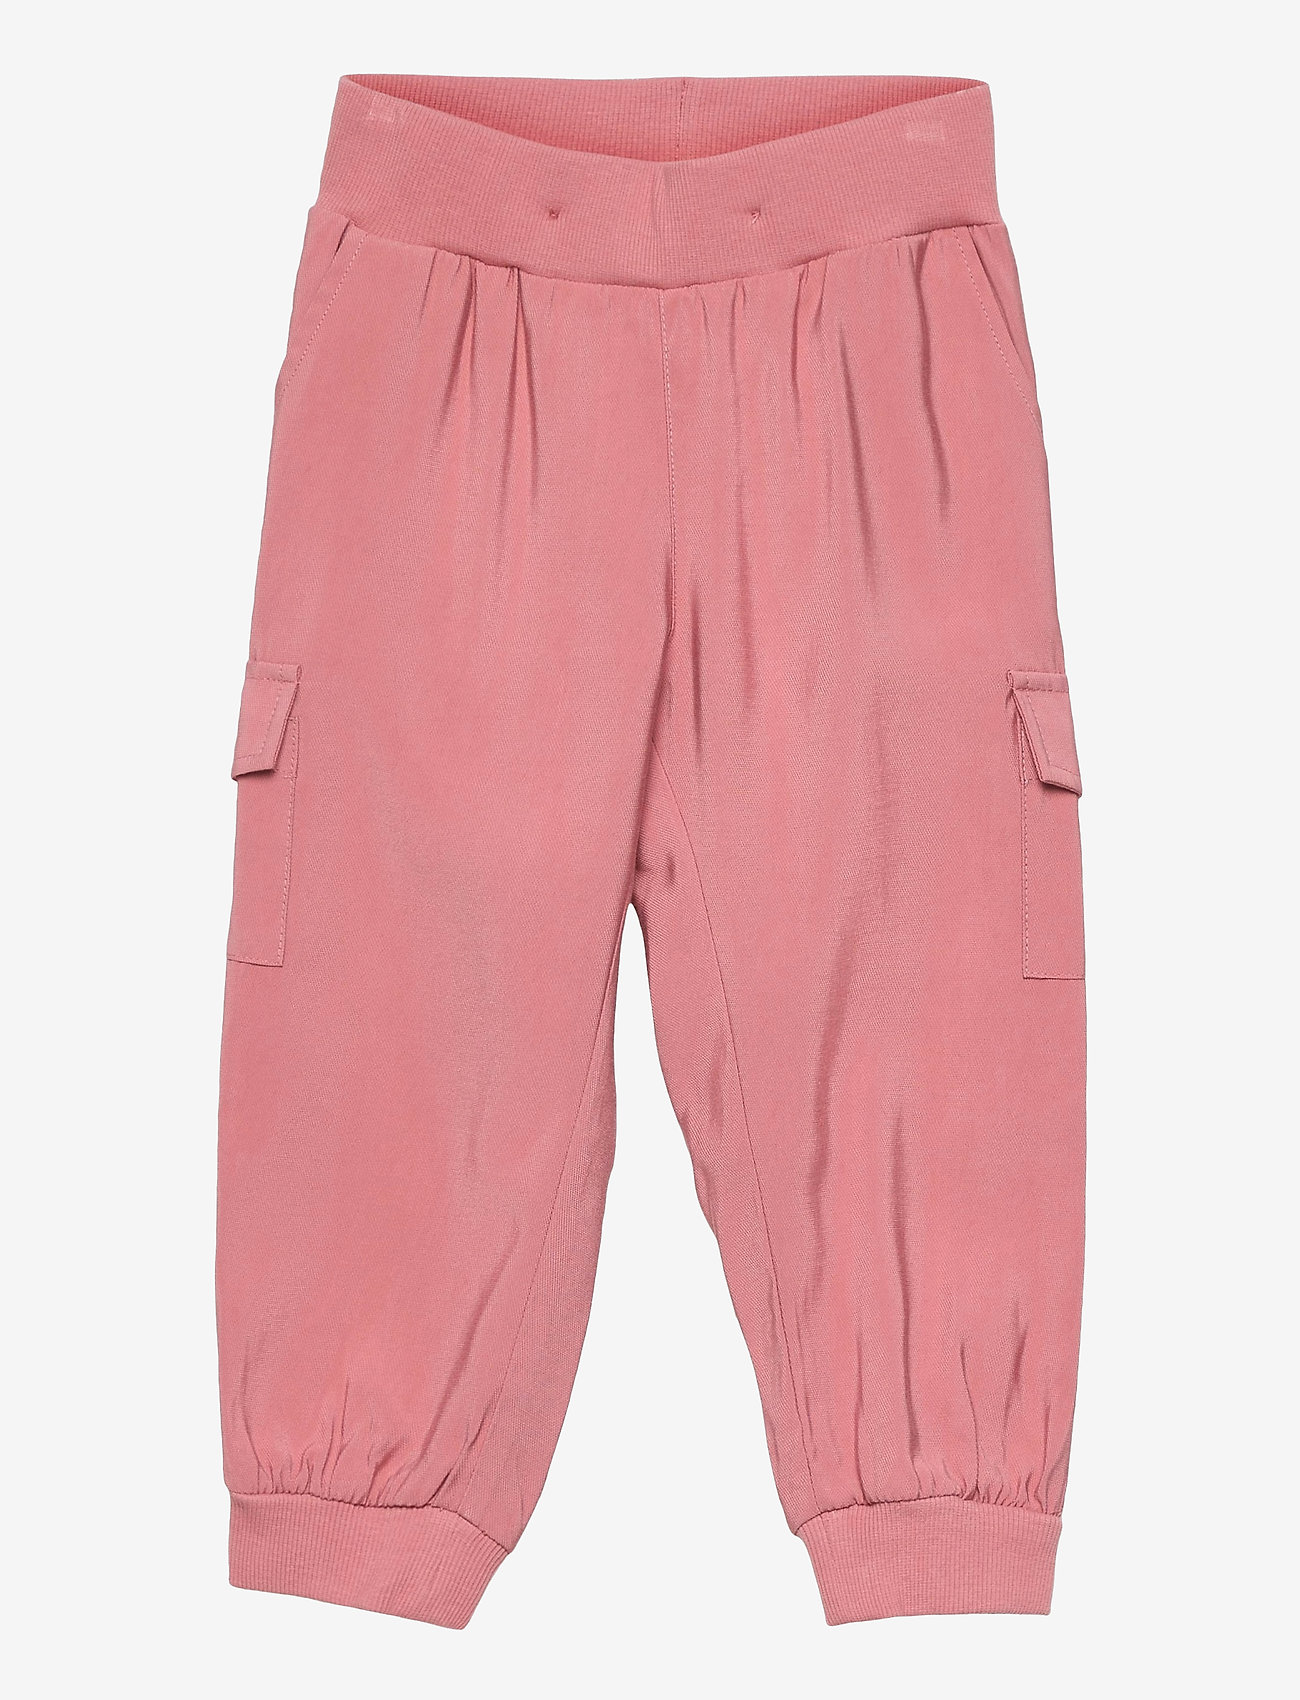 Lindex - Trousers Arlene2 - trousers - pink - 0